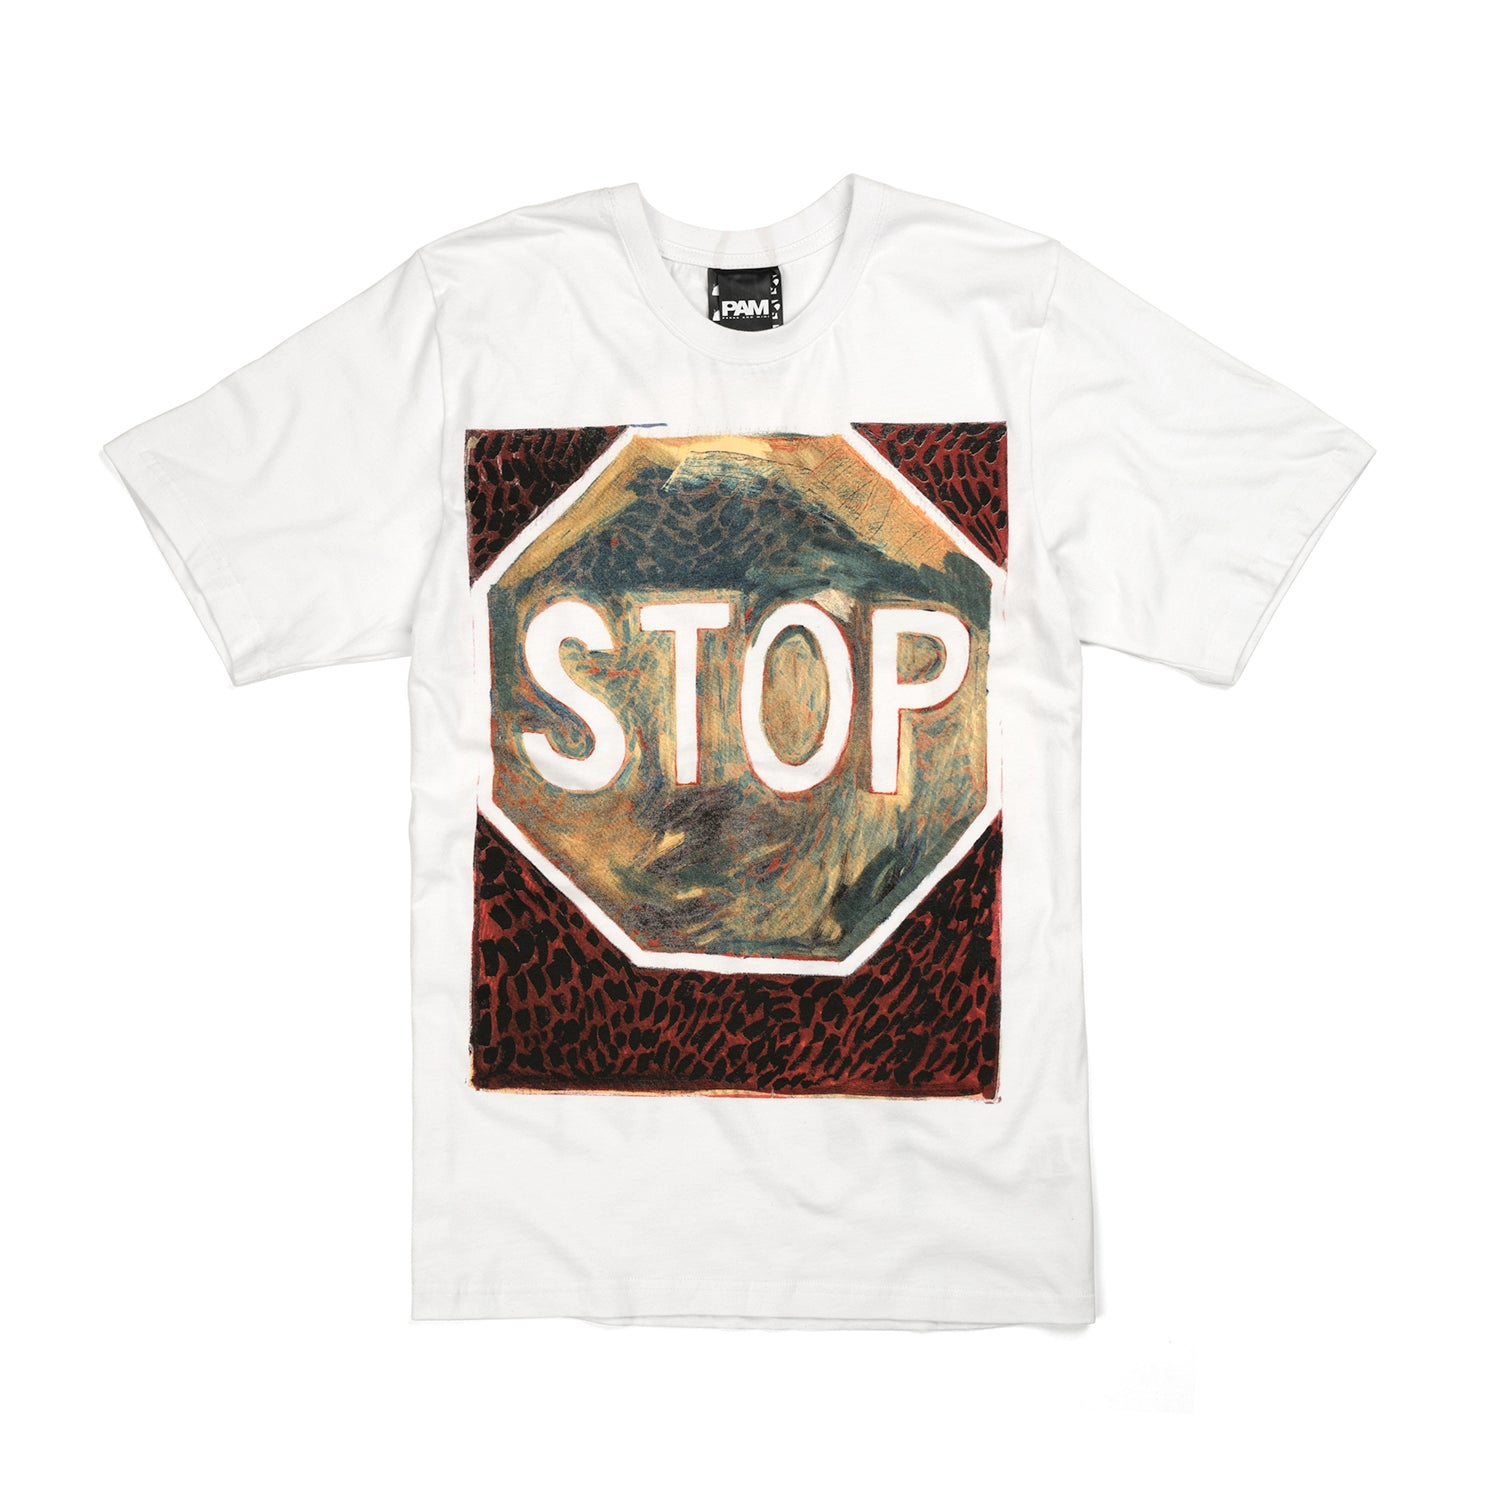 Perks and Mini (P.A.M.) Josh Smith S/S T-Shirt White